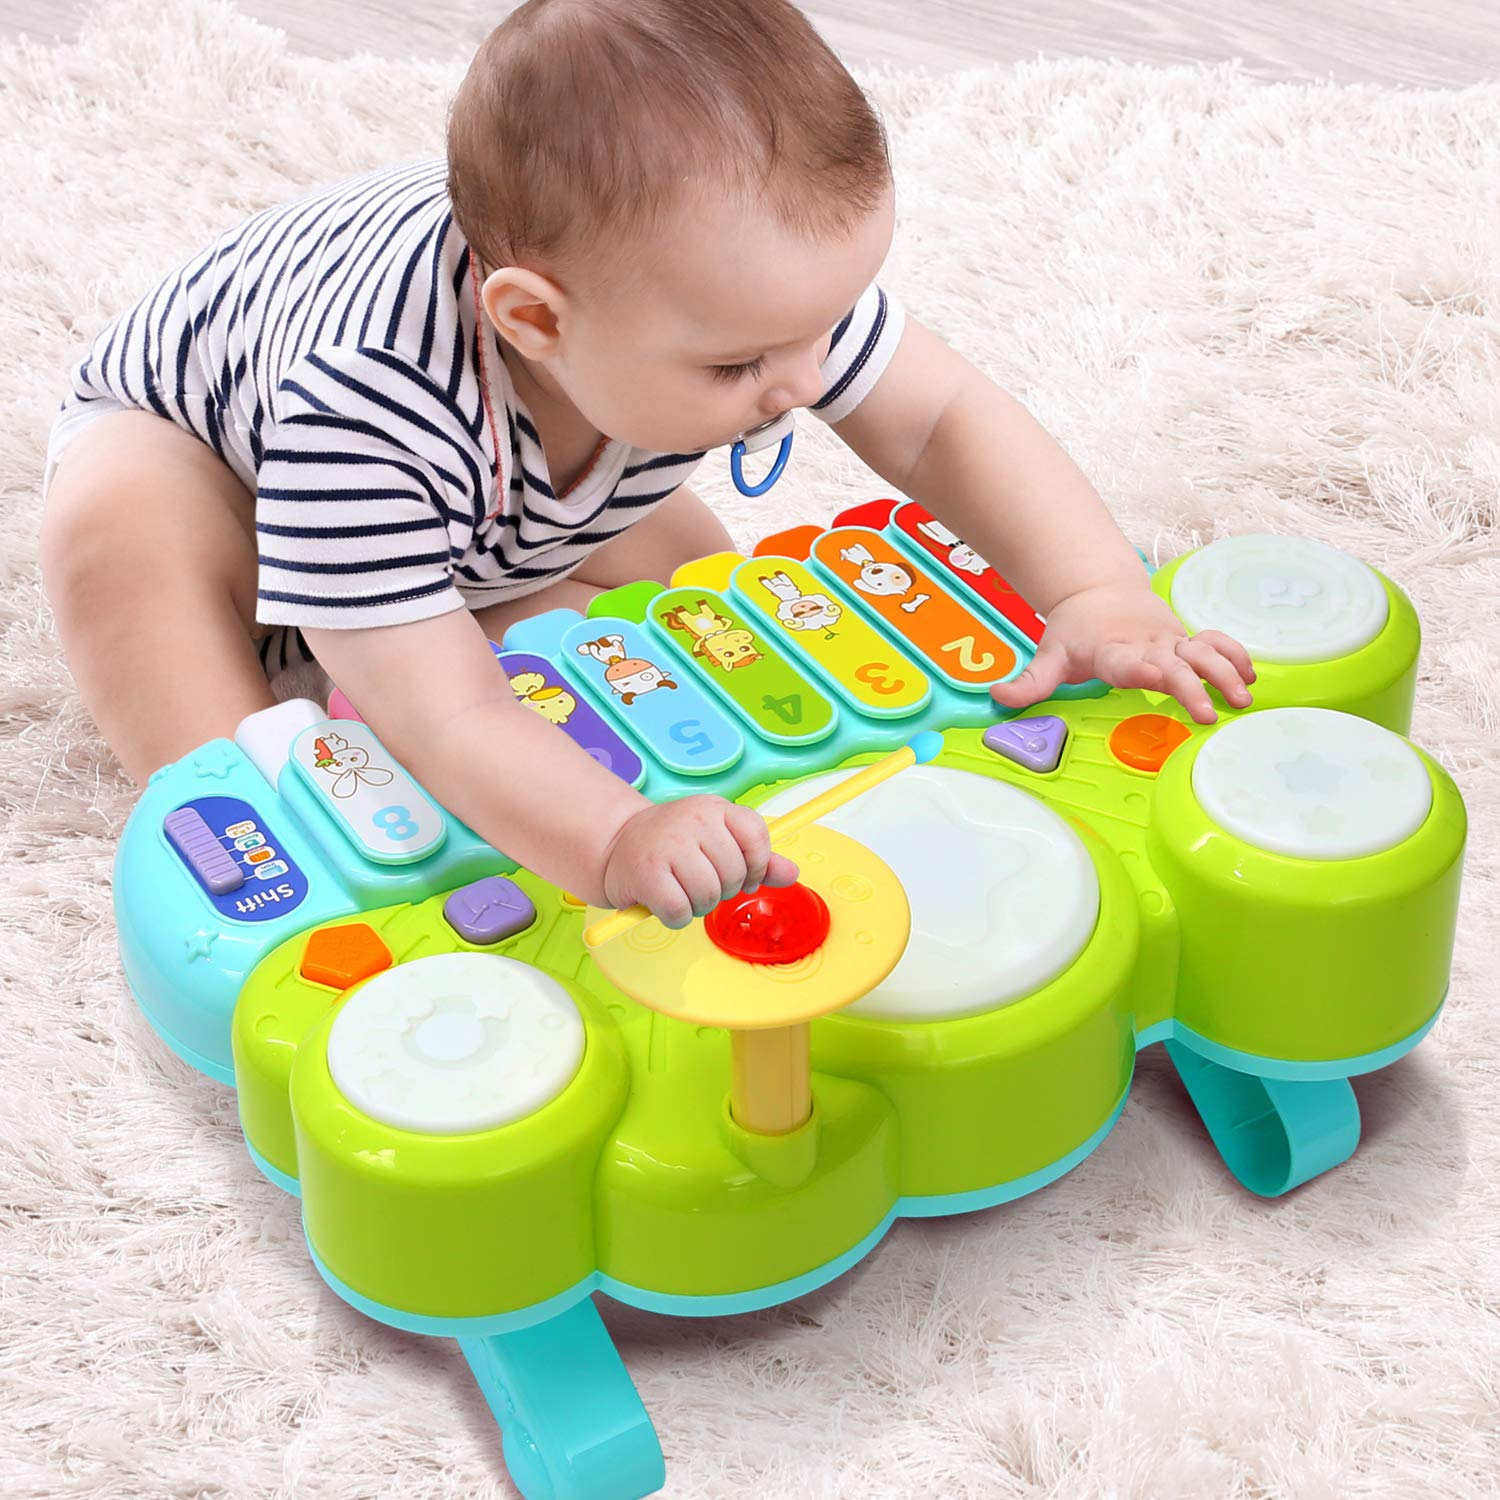 Xylophone Table Music Toys of Ohuhu, Multi-Function Toys Kids Drum Set, Discover & Play Piano Keyboard, Xylophone Set Electronic Learning Toys for Baby Infant Toddler Kids Children Birthday Gifts by Ohuhu